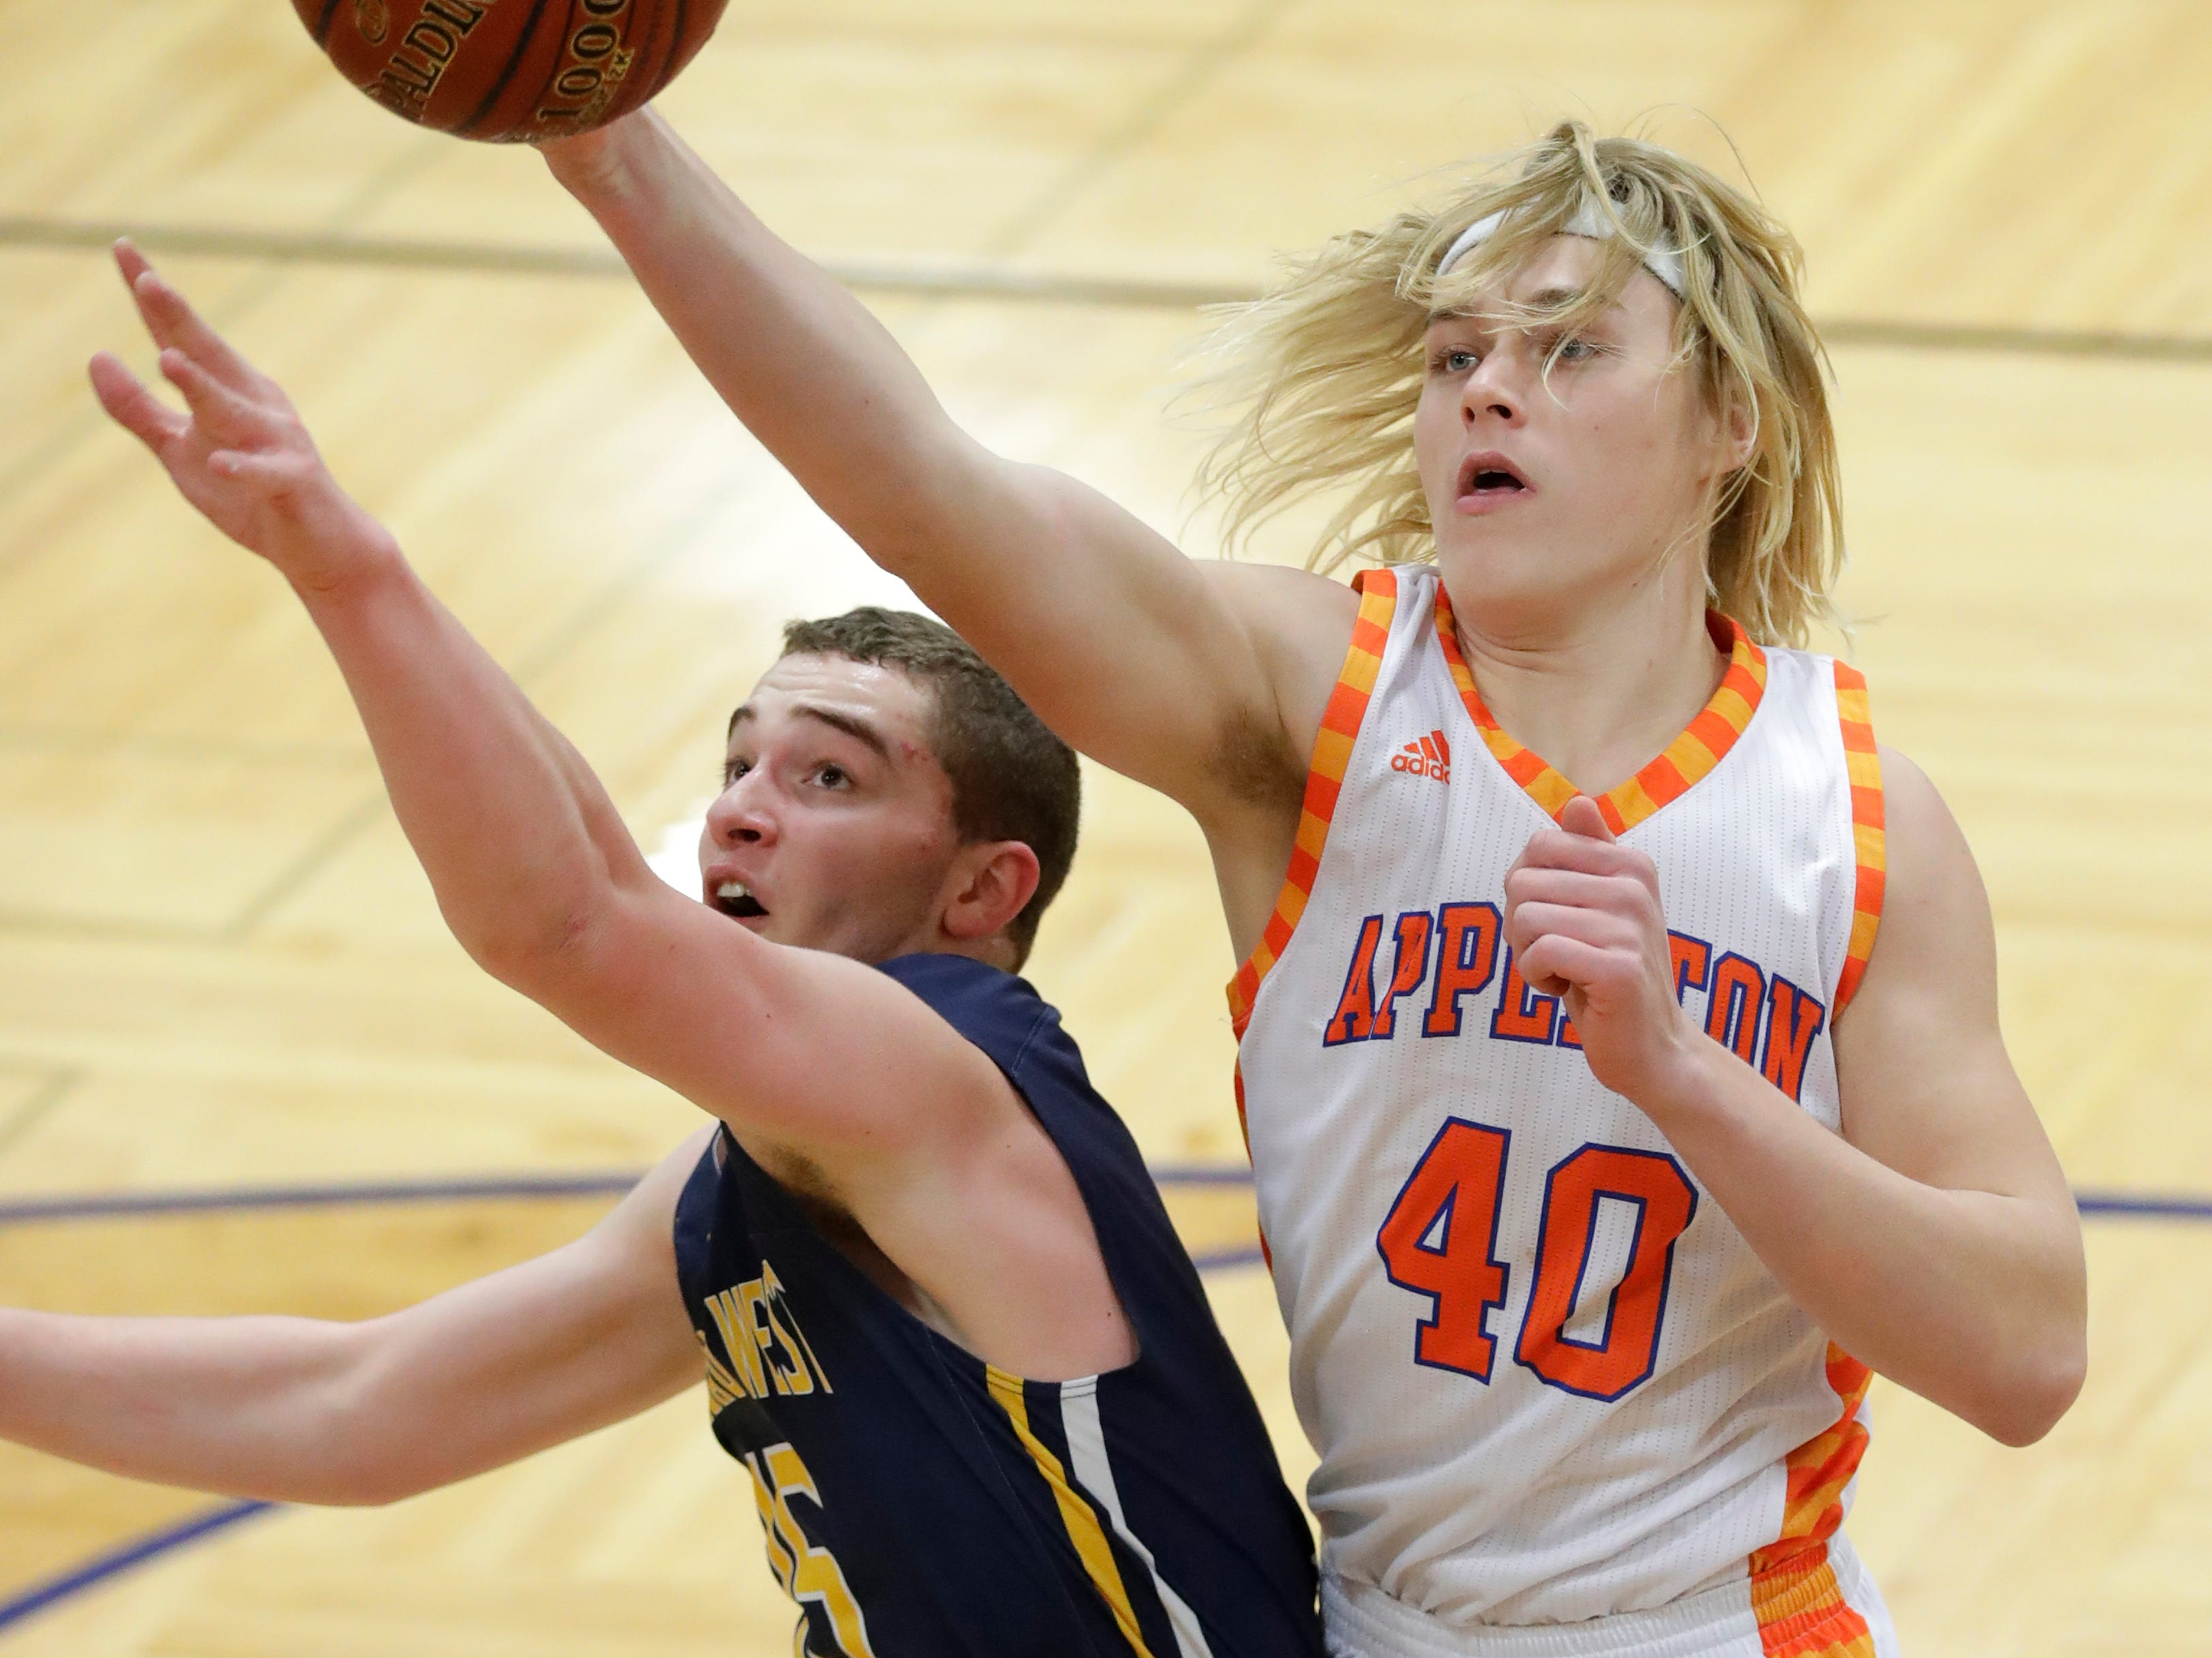 Appleton West  High School's Carson Hacker (40) defends against Wausau West High School's Jacob Rapp (15) during their boys basketball game Friday, December 28, 2018, in Appleton, Wis. Dan Powers/USA TODAY NETWORK-Wisconsin